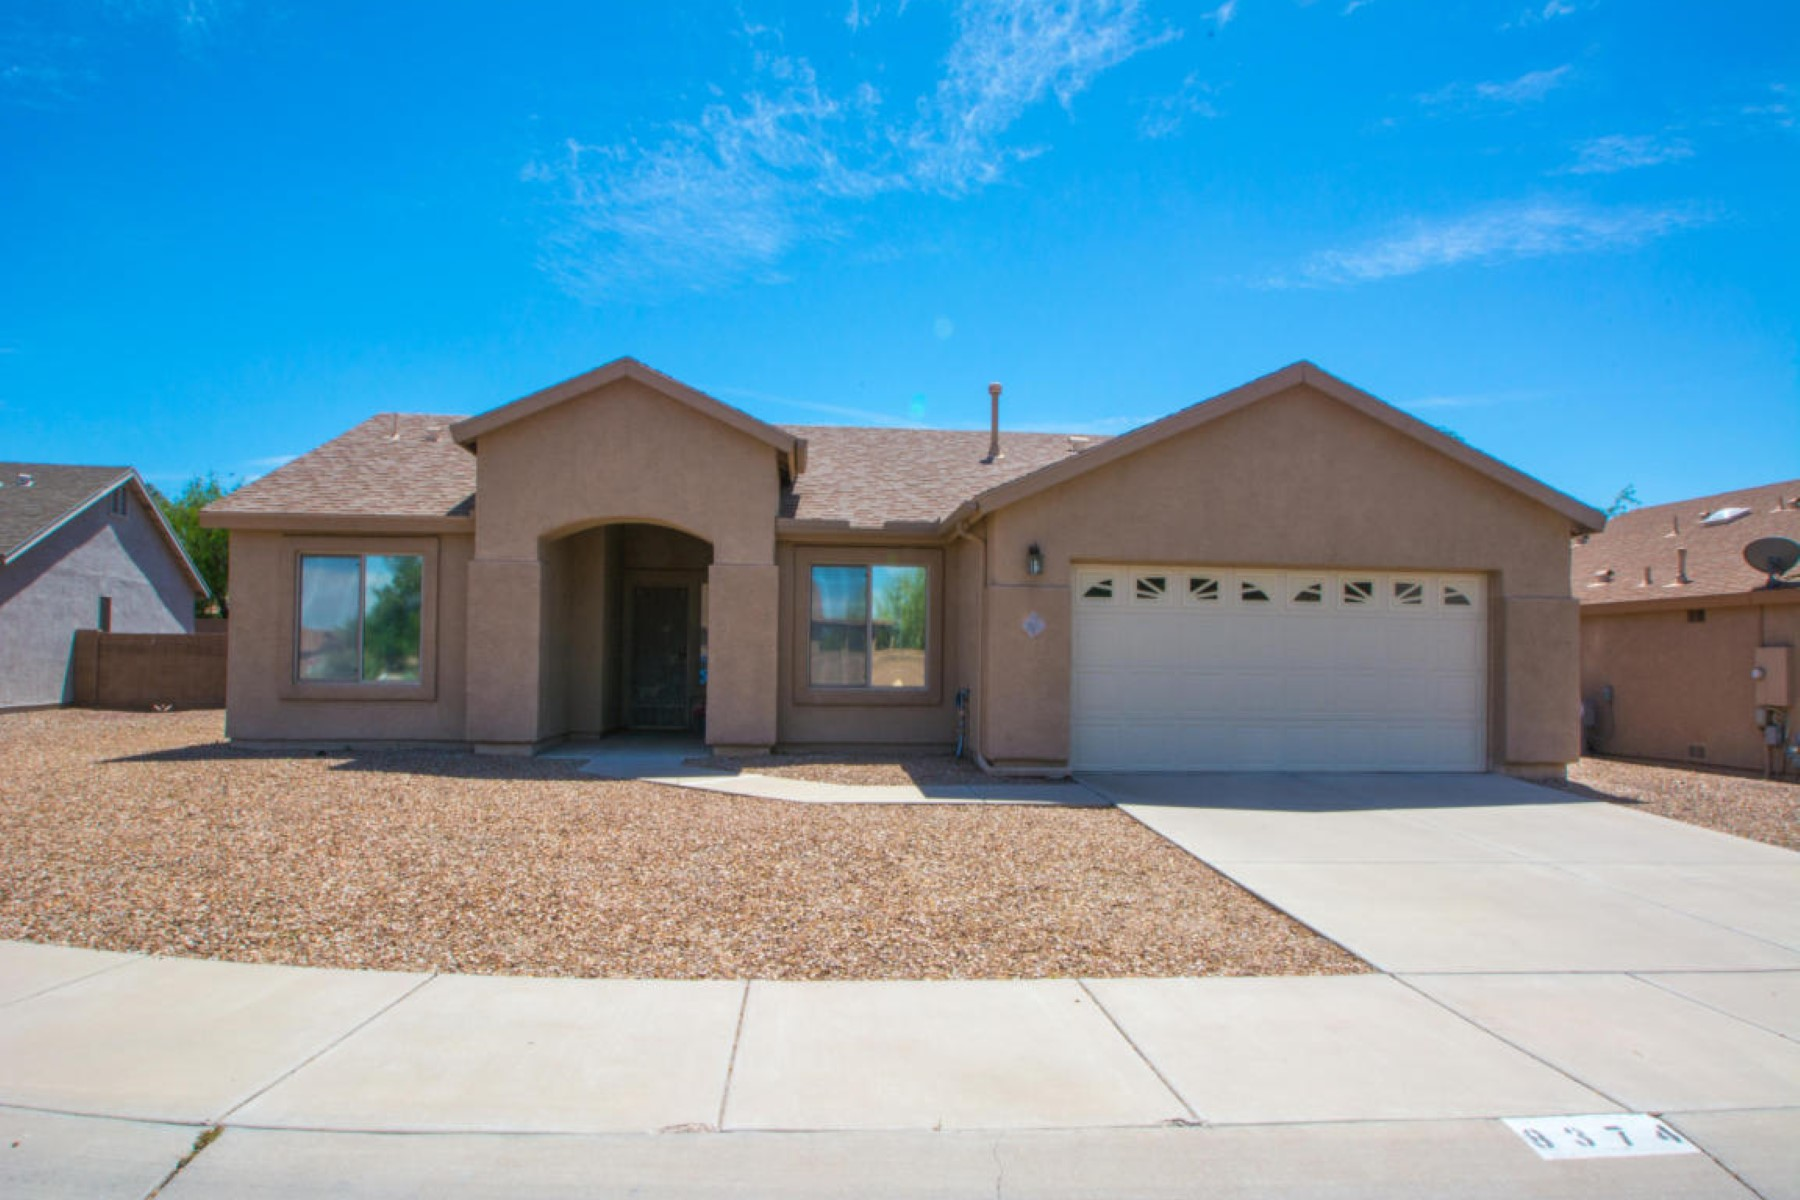 Vivienda unifamiliar por un Venta en Sought after neighborhood 8374 N Birthstone Lane N Tucson, Arizona 85741 Estados Unidos